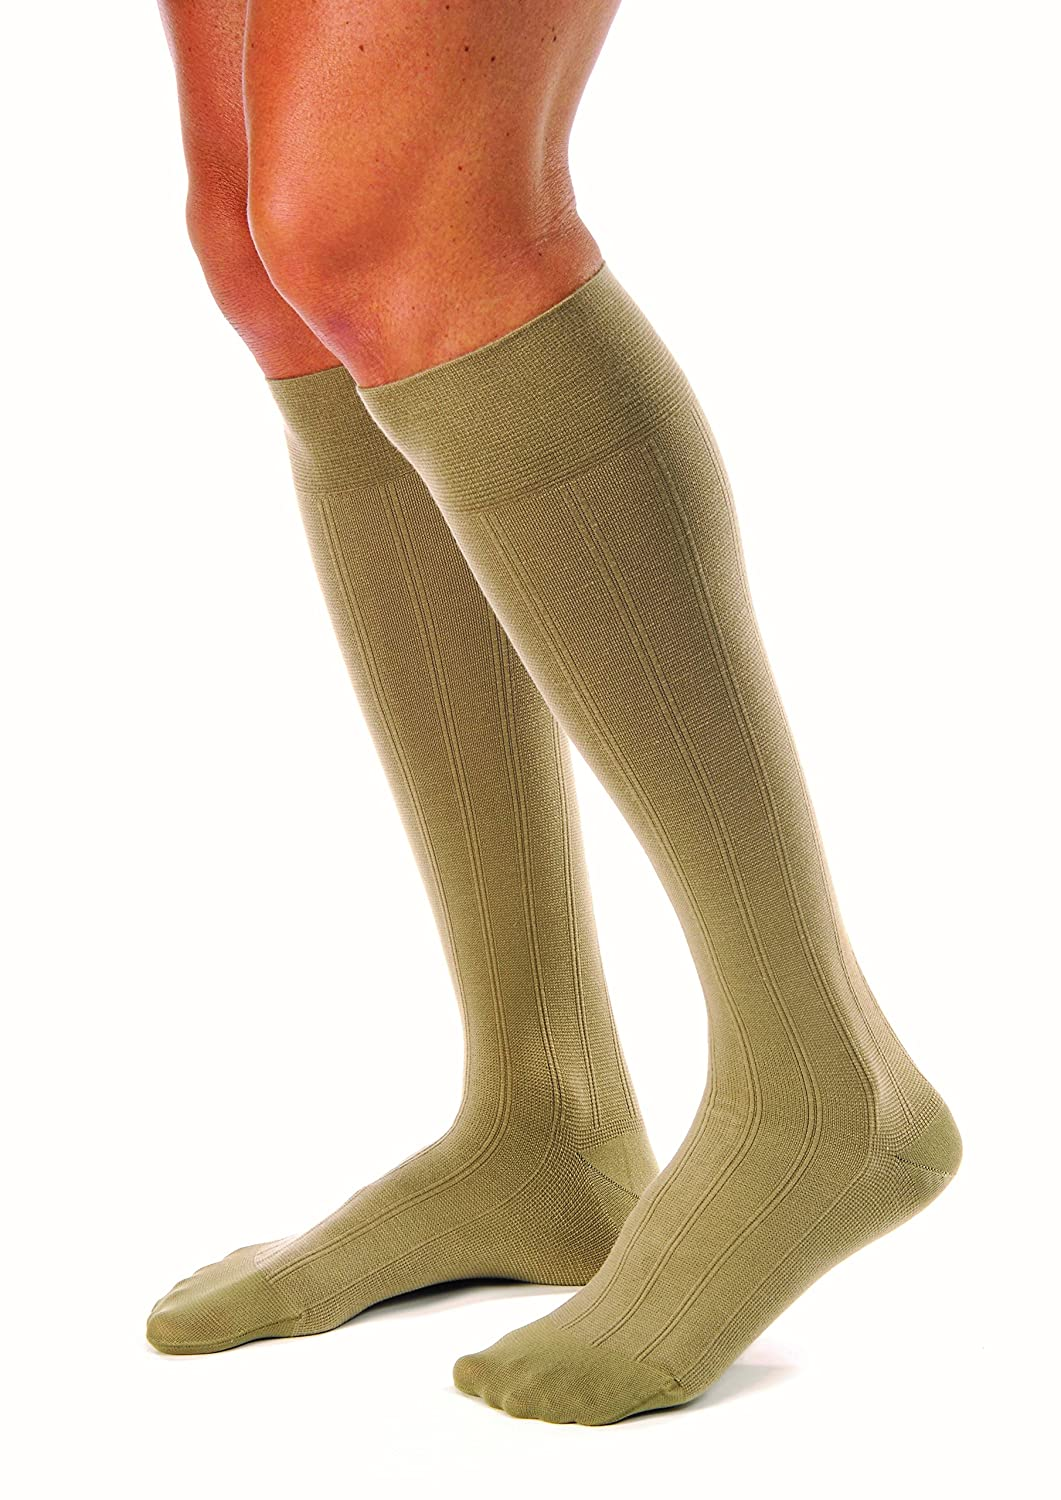 Men's 15-20 mmHg Moderate Casual Knee High Support Sock Size: X-Large, Color: Khaki by Jobst B001MKLQ7I